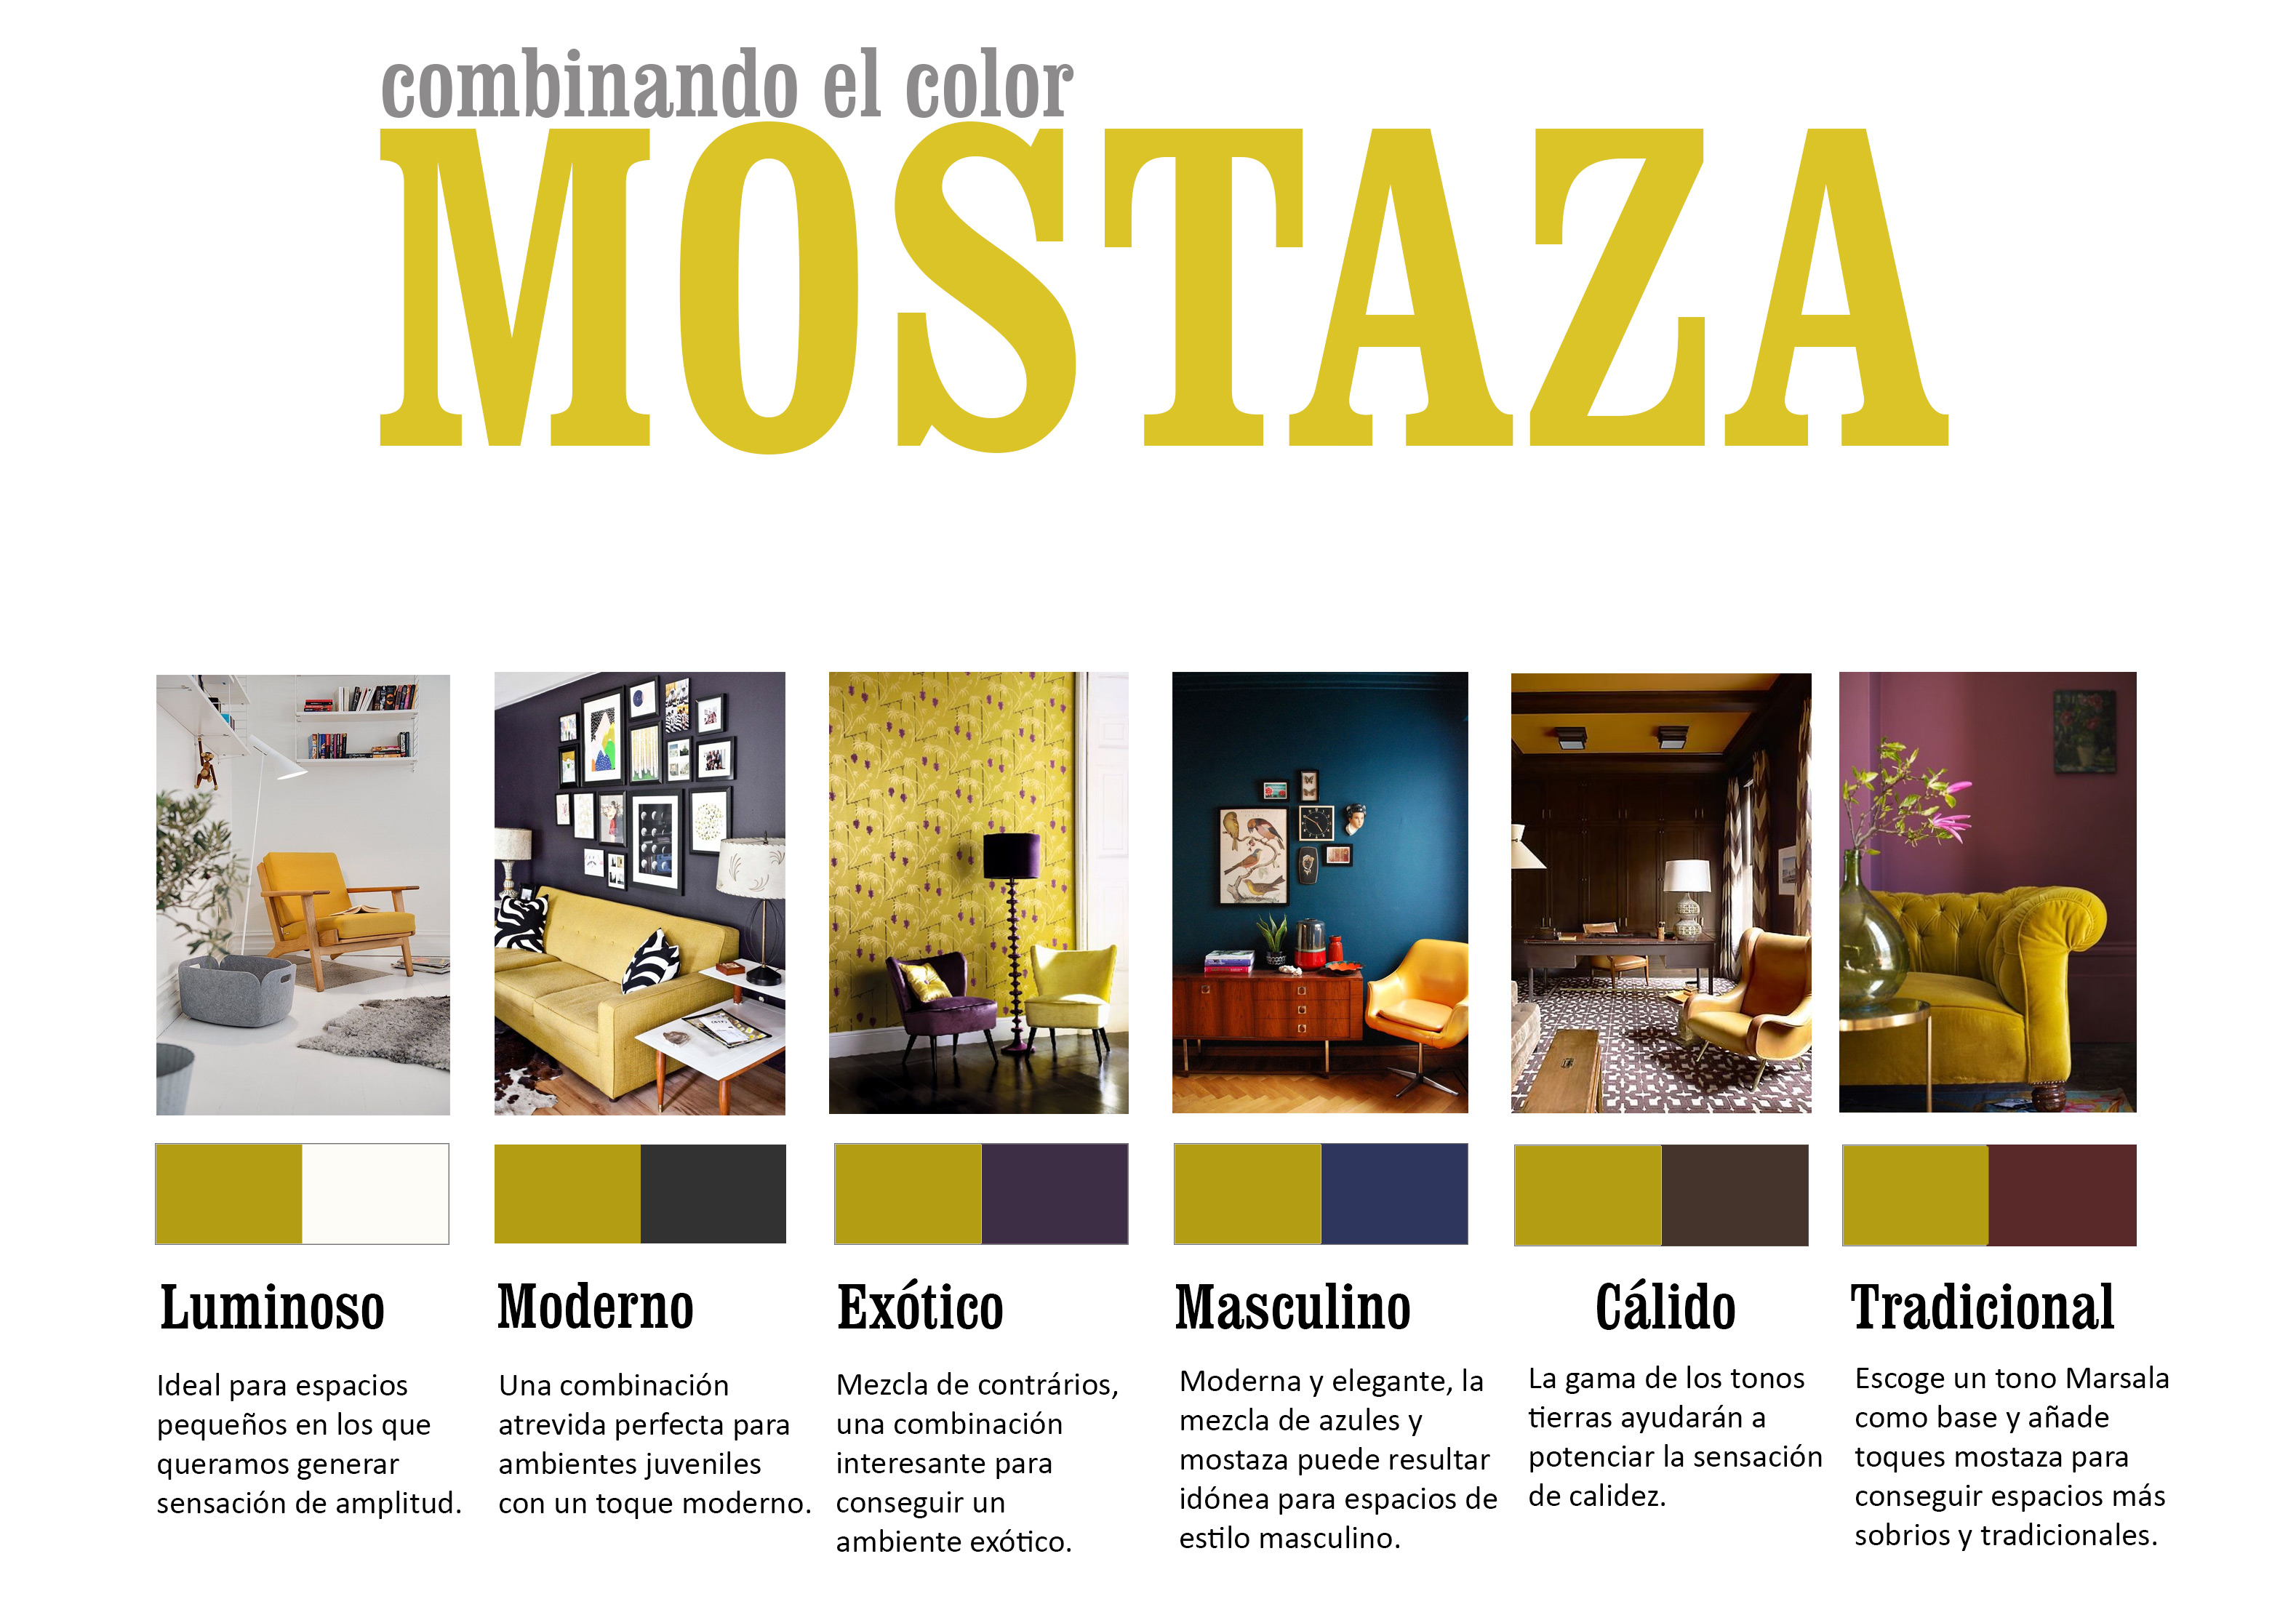 Atr vete con una decoraci n en color mostaza - Como combinar colores en decoracion ...